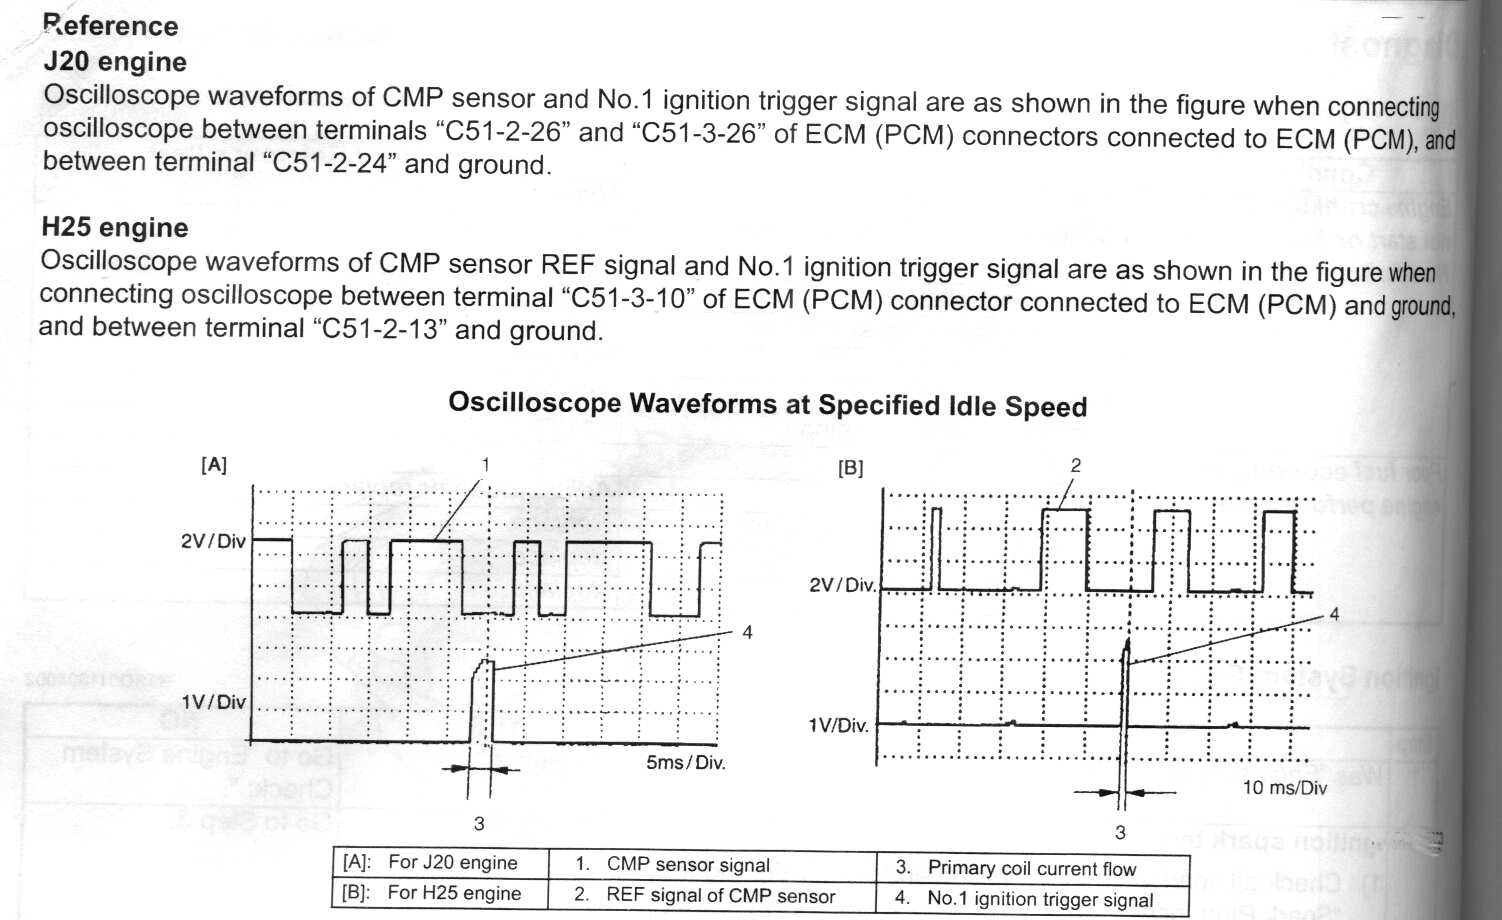 Oscilloscope waveforms at specified idle speed